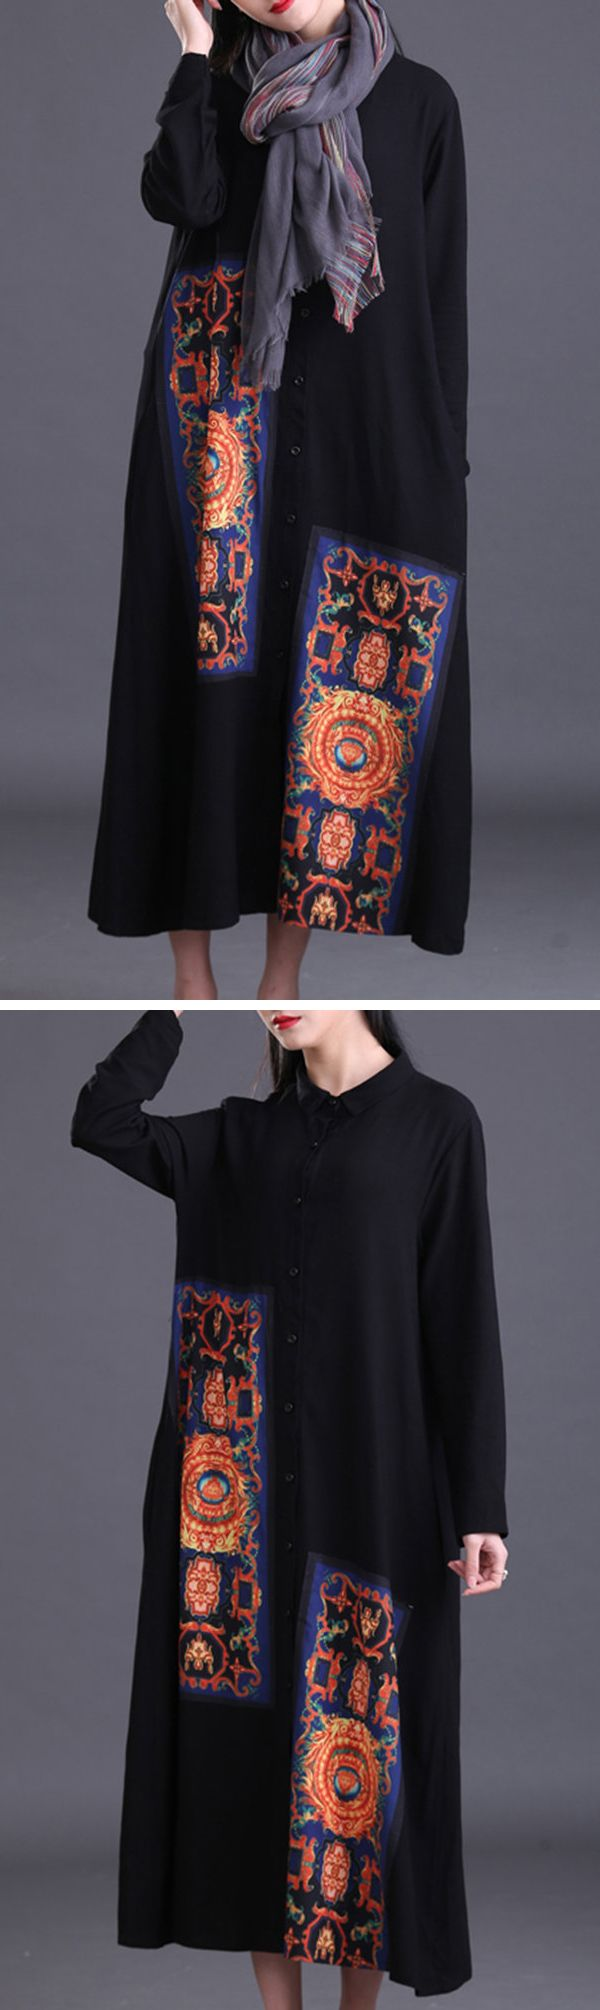 [Newchic Online Shopping] 48% OFF US$ 23.88 Gracila Casual Patchwork Women Shirt Dress